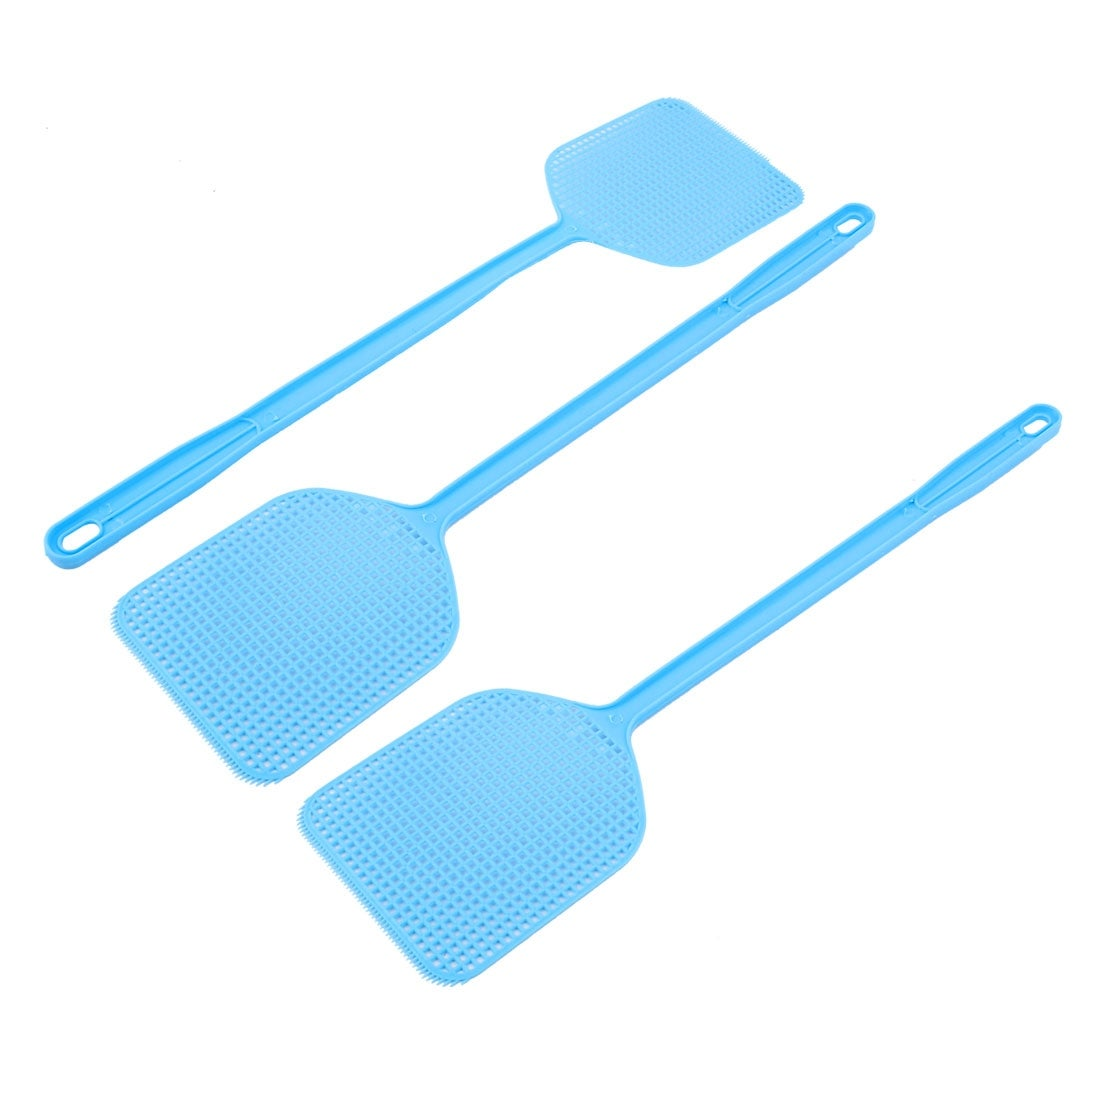 Shop 3pcs Blue Plastic Fly Swatter Bug Mosquito Insect Killer Electronics Hobby Catcher 45cm Length Free Shipping On Orders Over 45 18077508